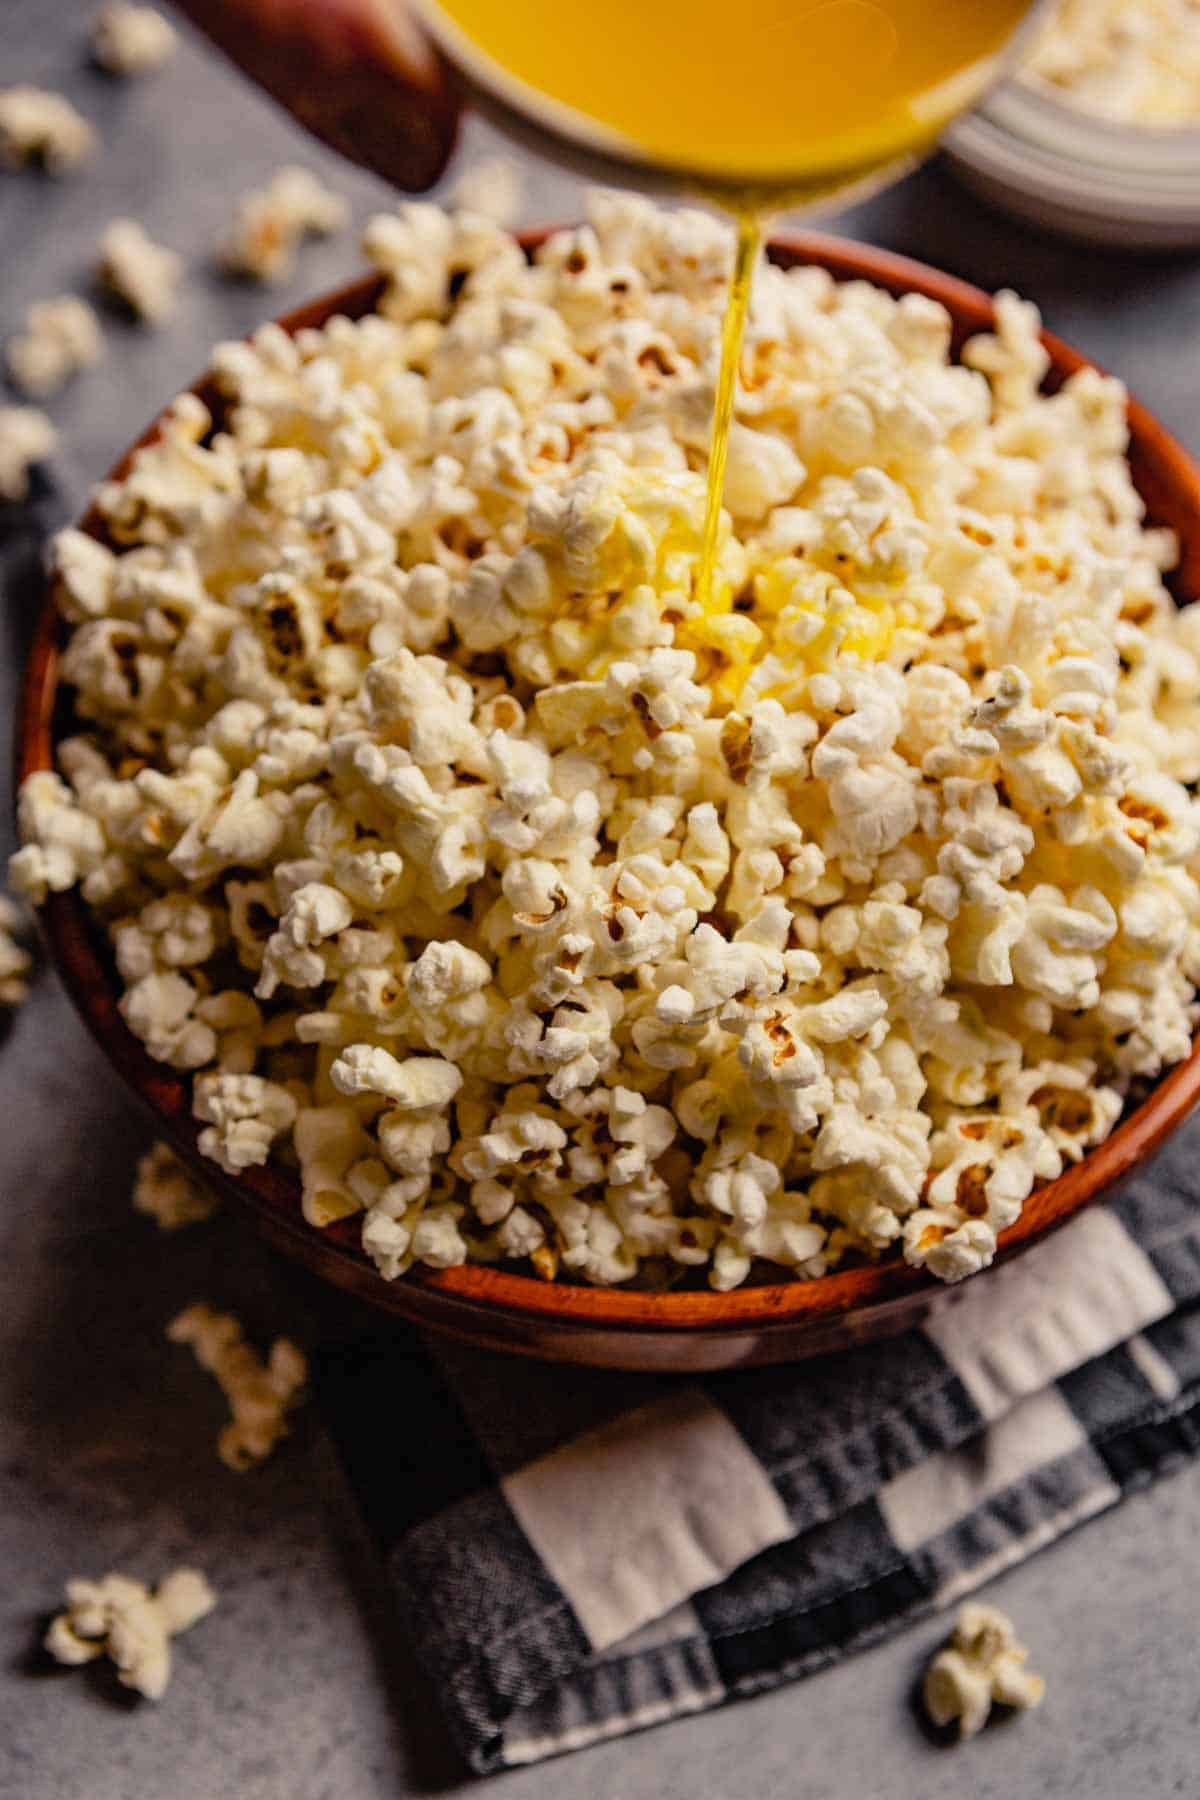 Bowl of popcorn with clarified butter being drizzled over top.